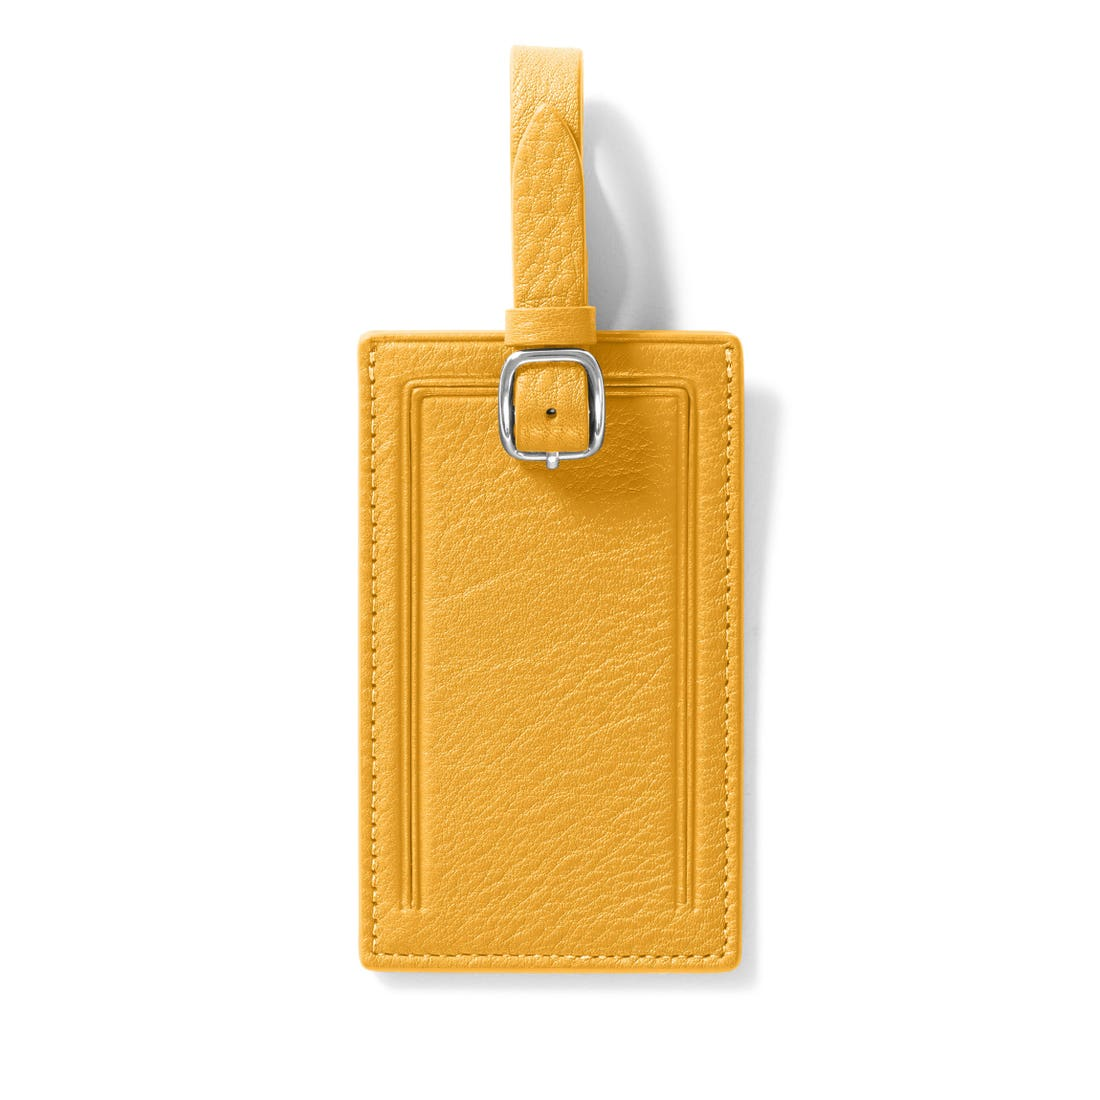 Standard Rectangular Luggage Tag